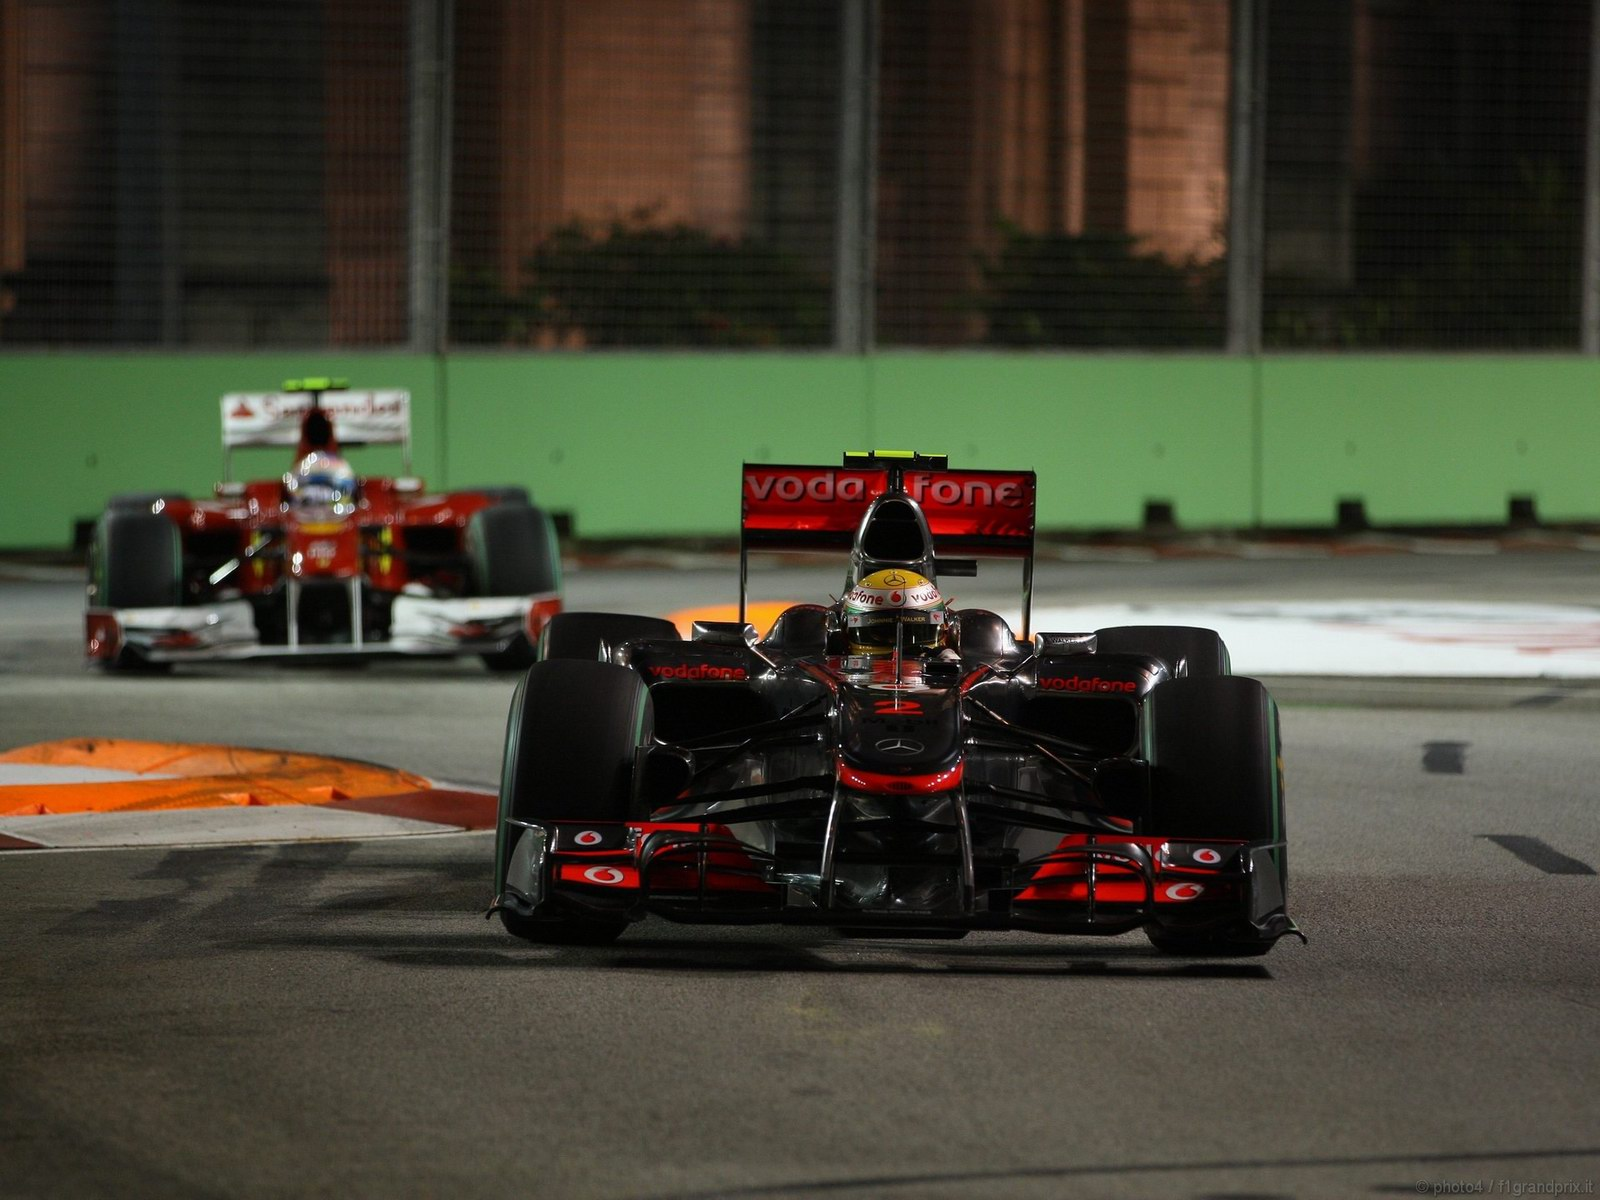 pojazdy - formula1 - gp_singapore_wallpapers_000119